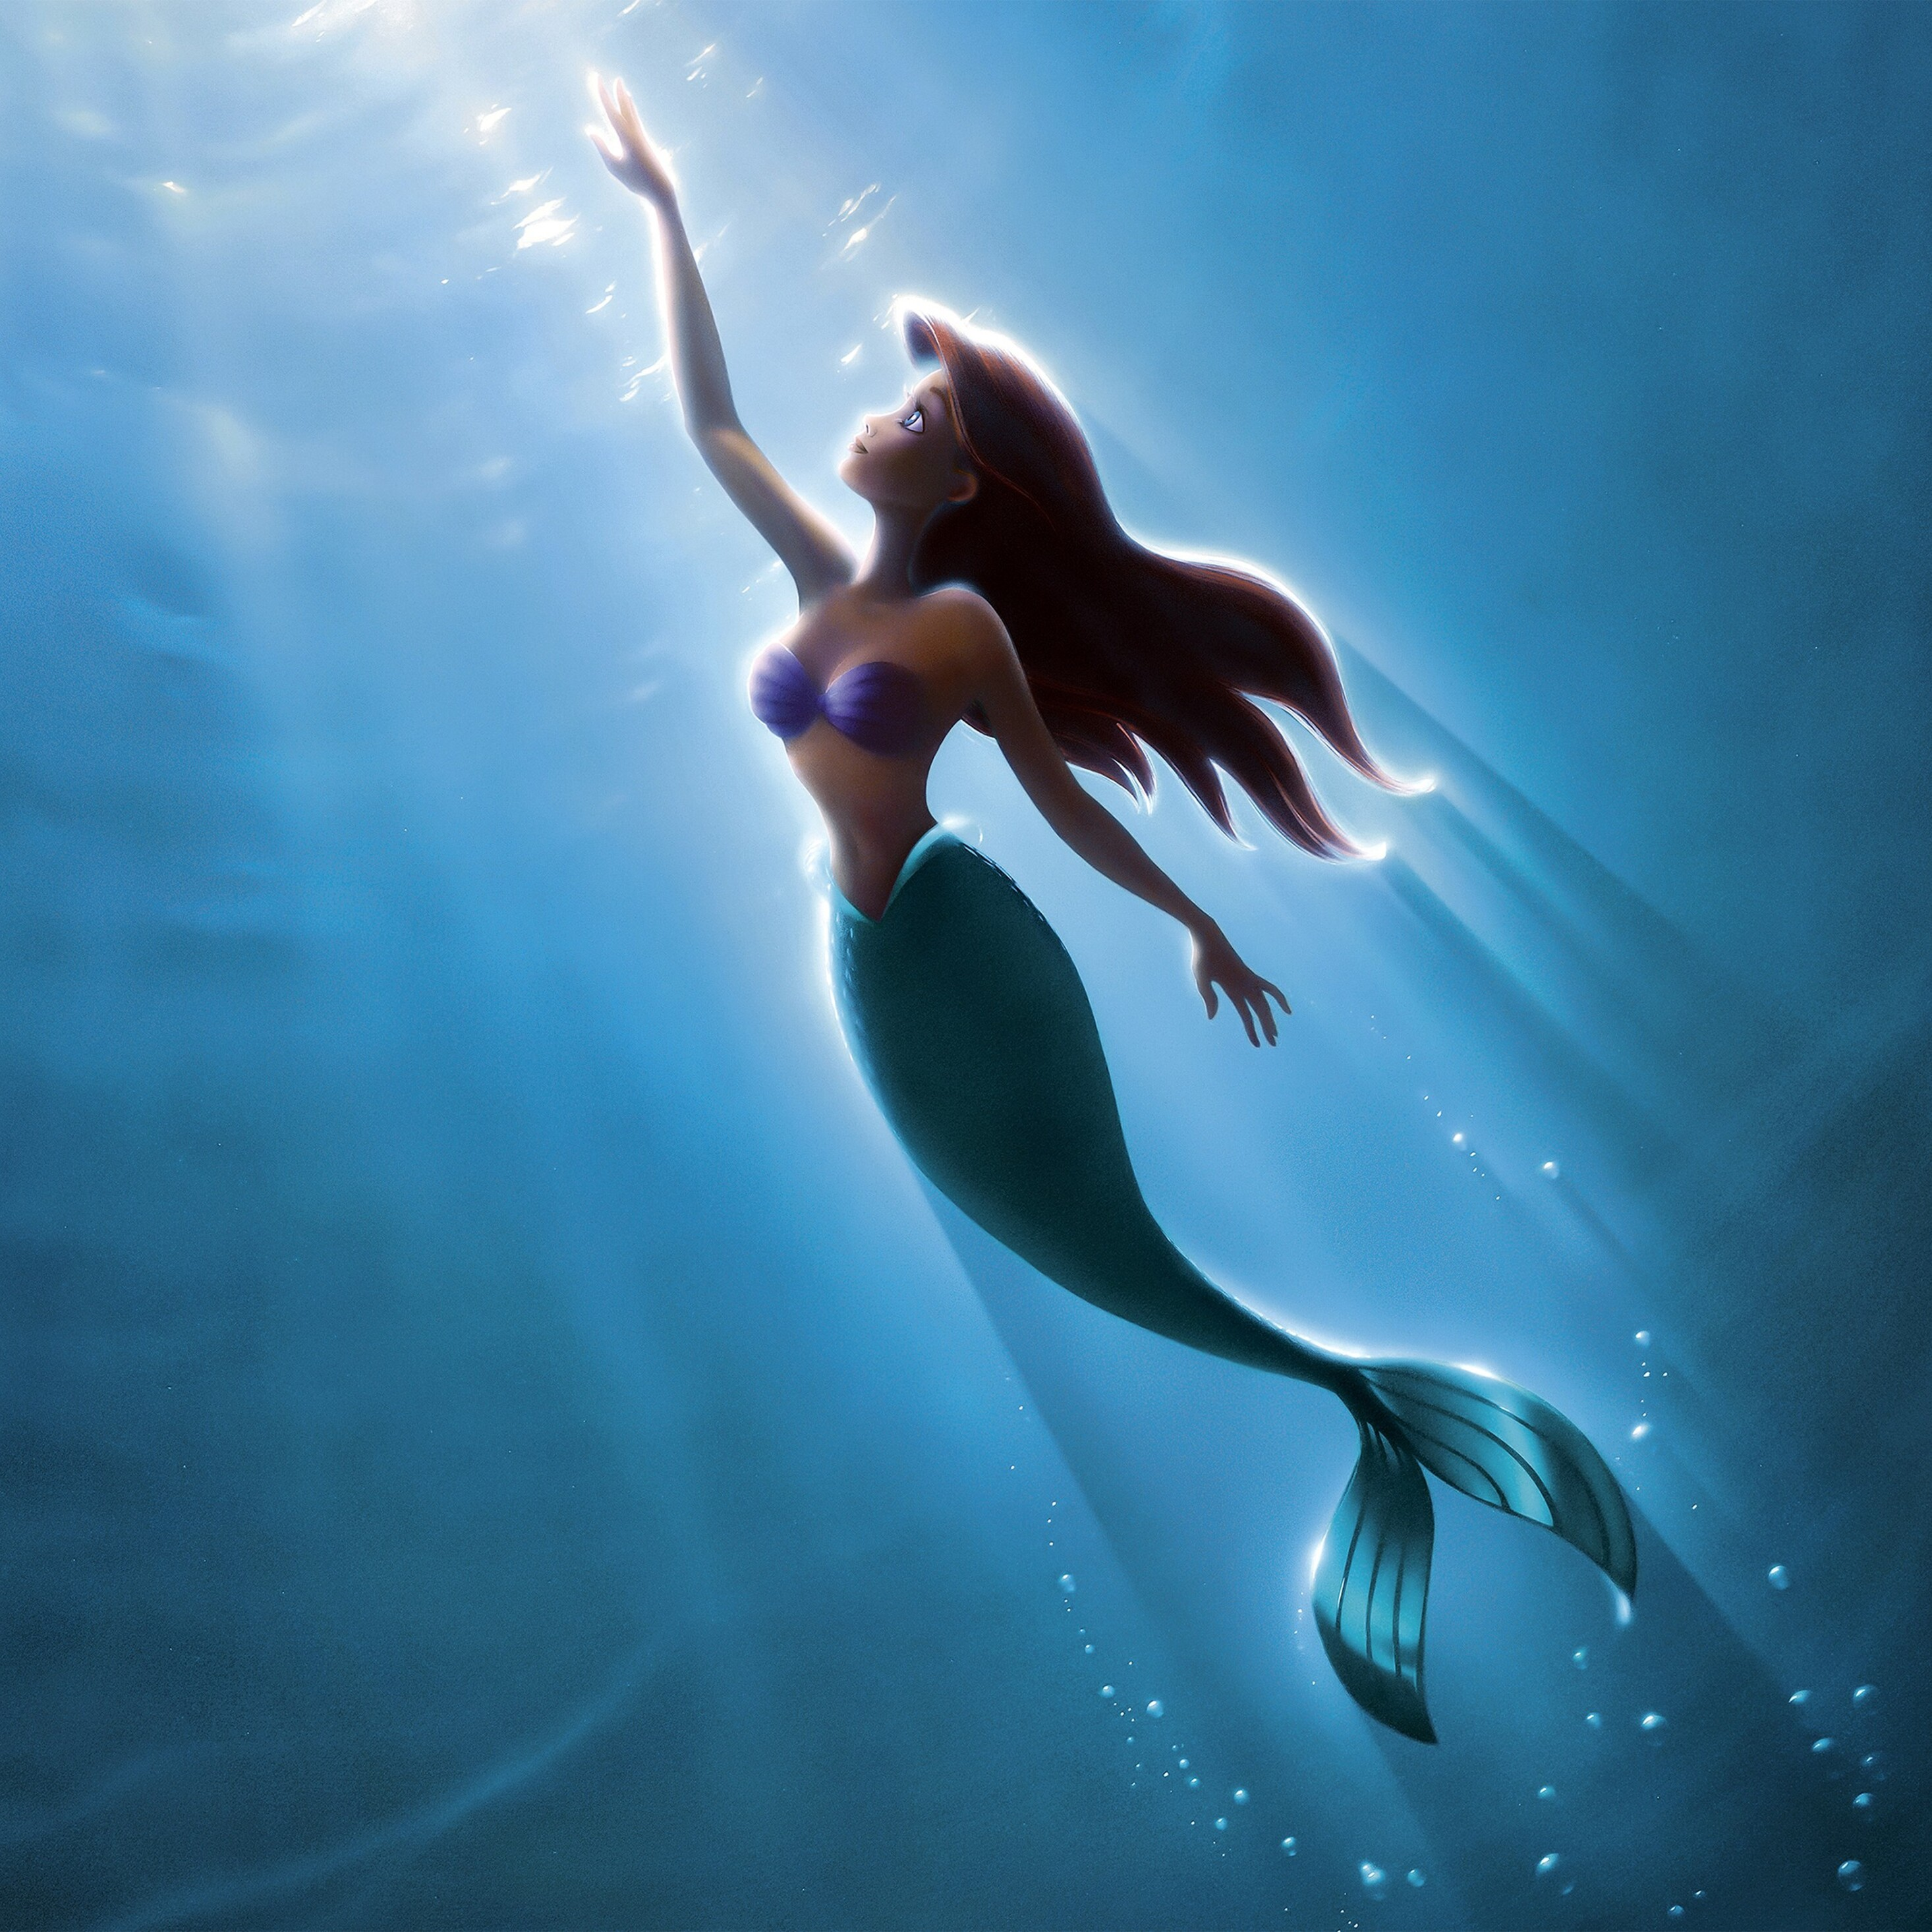 2932x2932 The Little Mermaid 4k Ipad Pro Retina Display Hd 4k Wallpapers Images Backgrounds Photos And Pictures